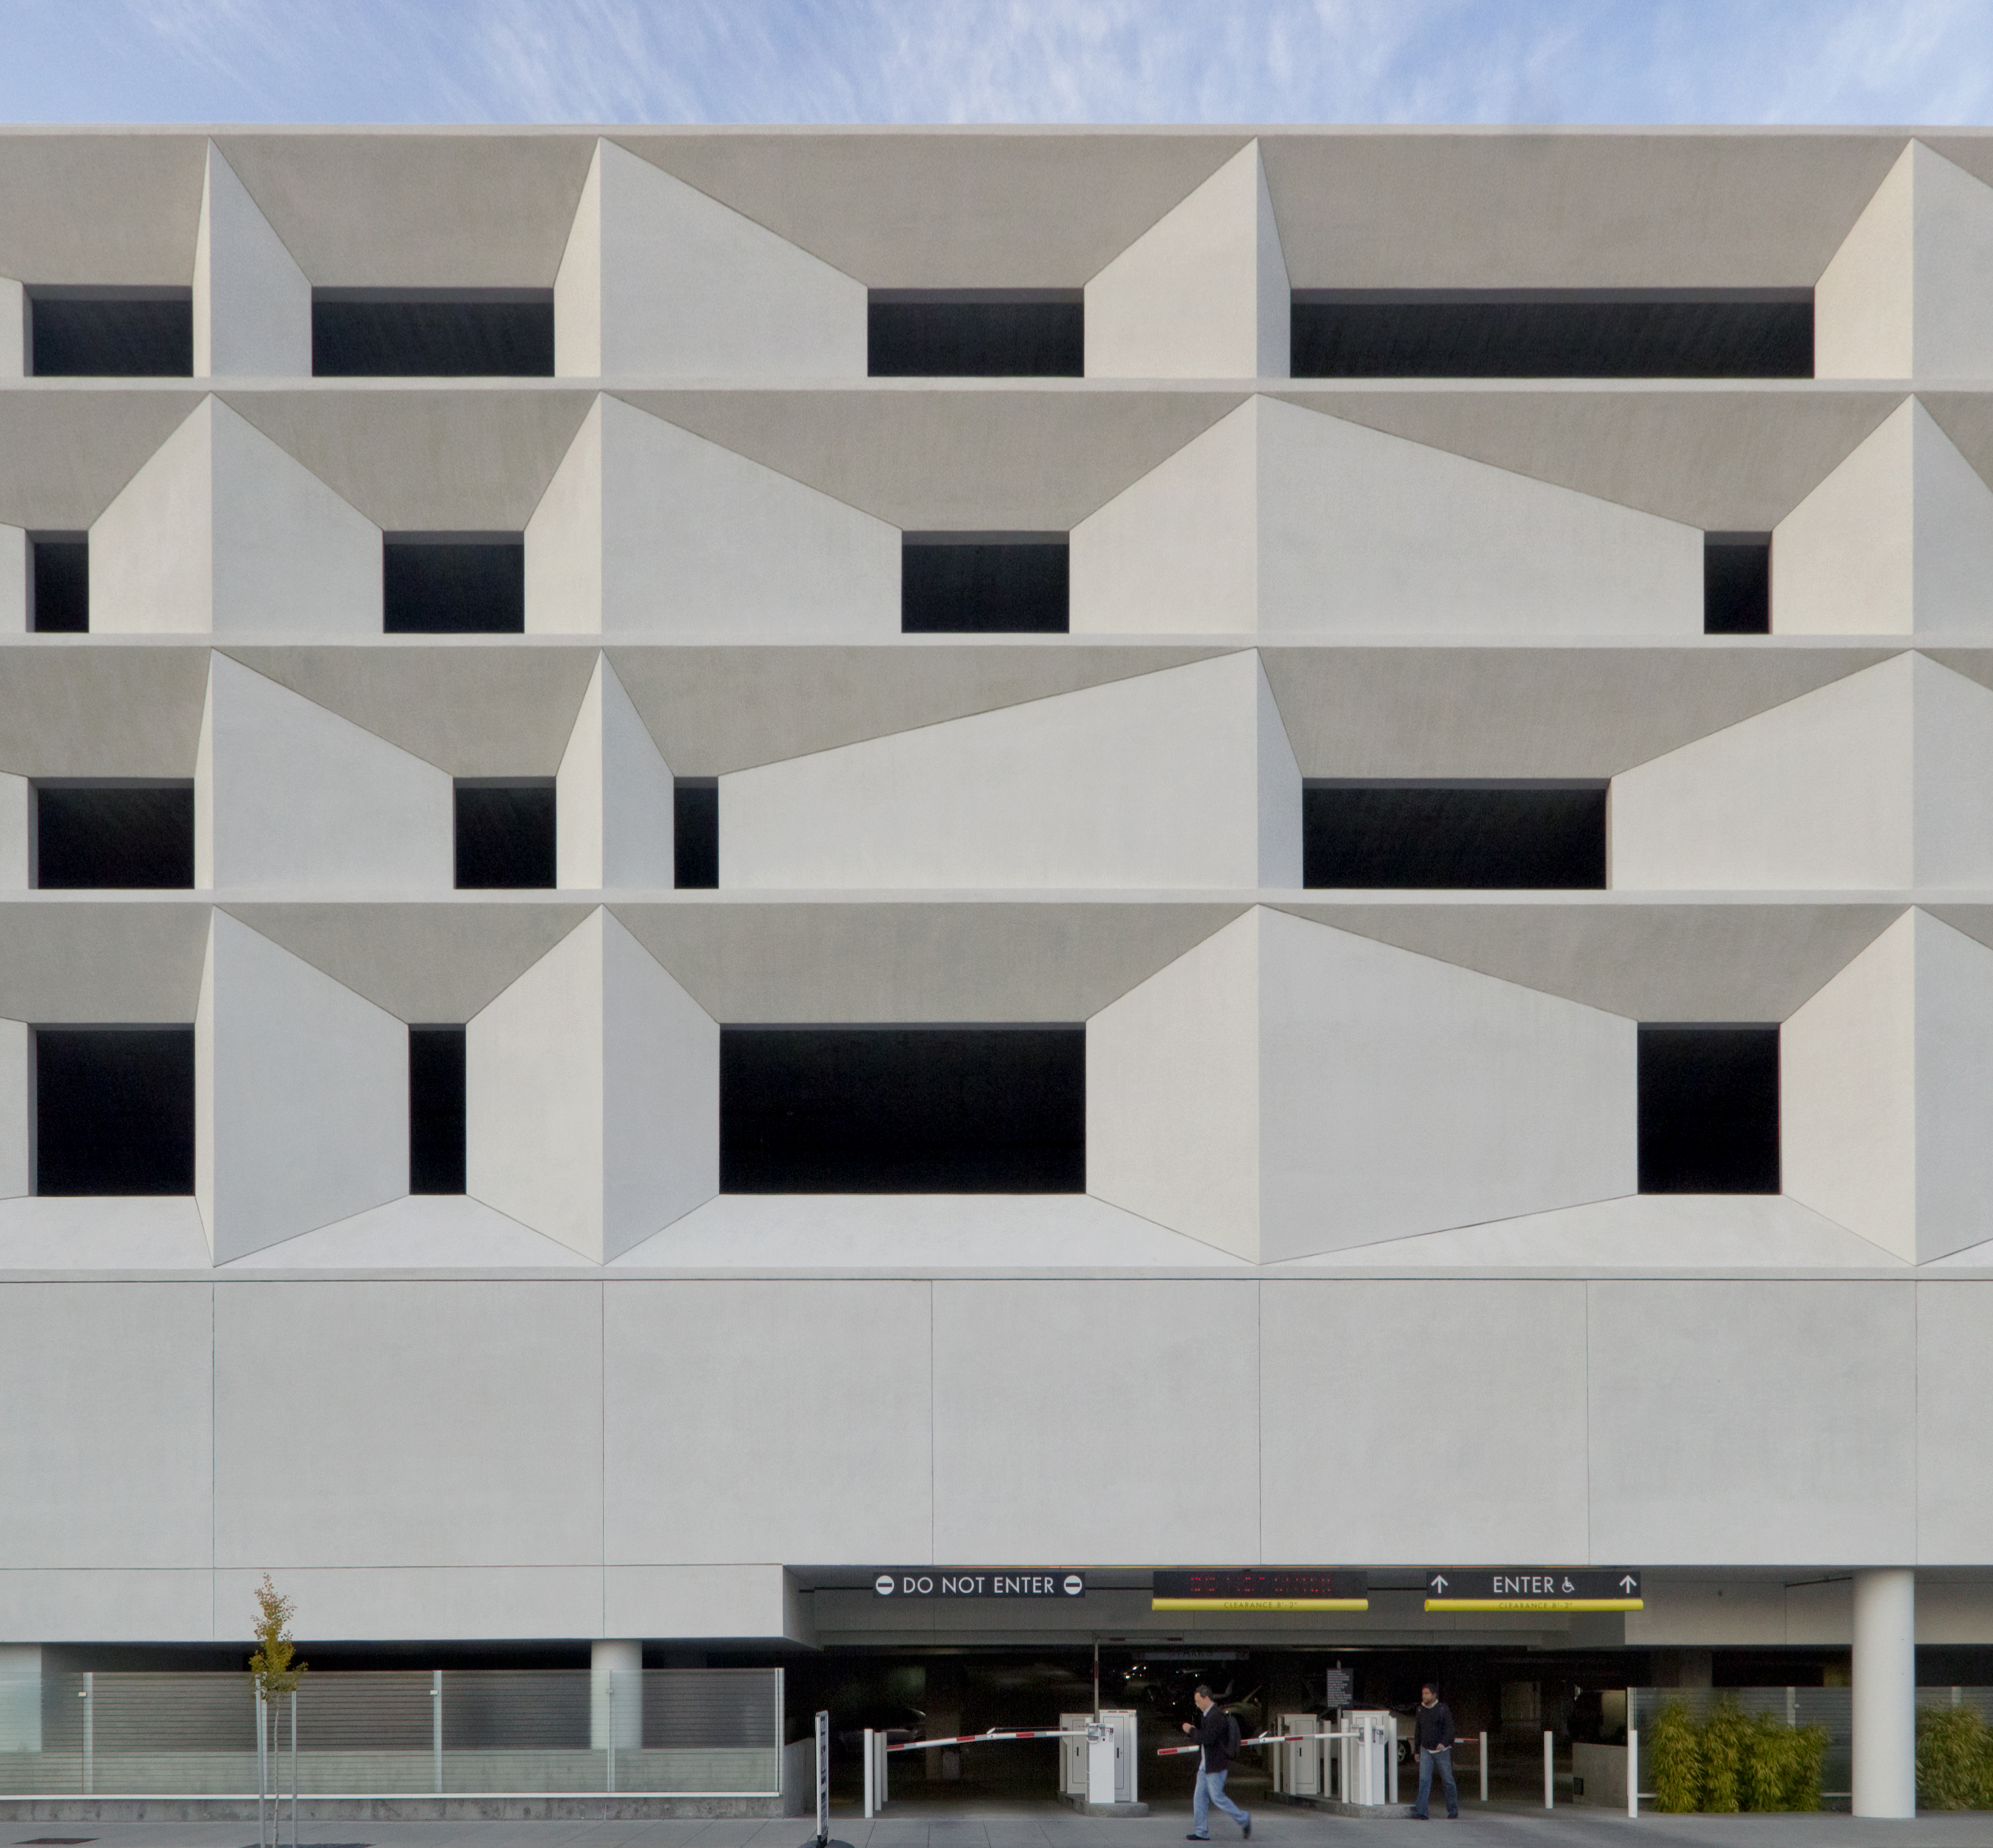 The northwest and south sides of the parking structure feature an intriguing stucco facade.